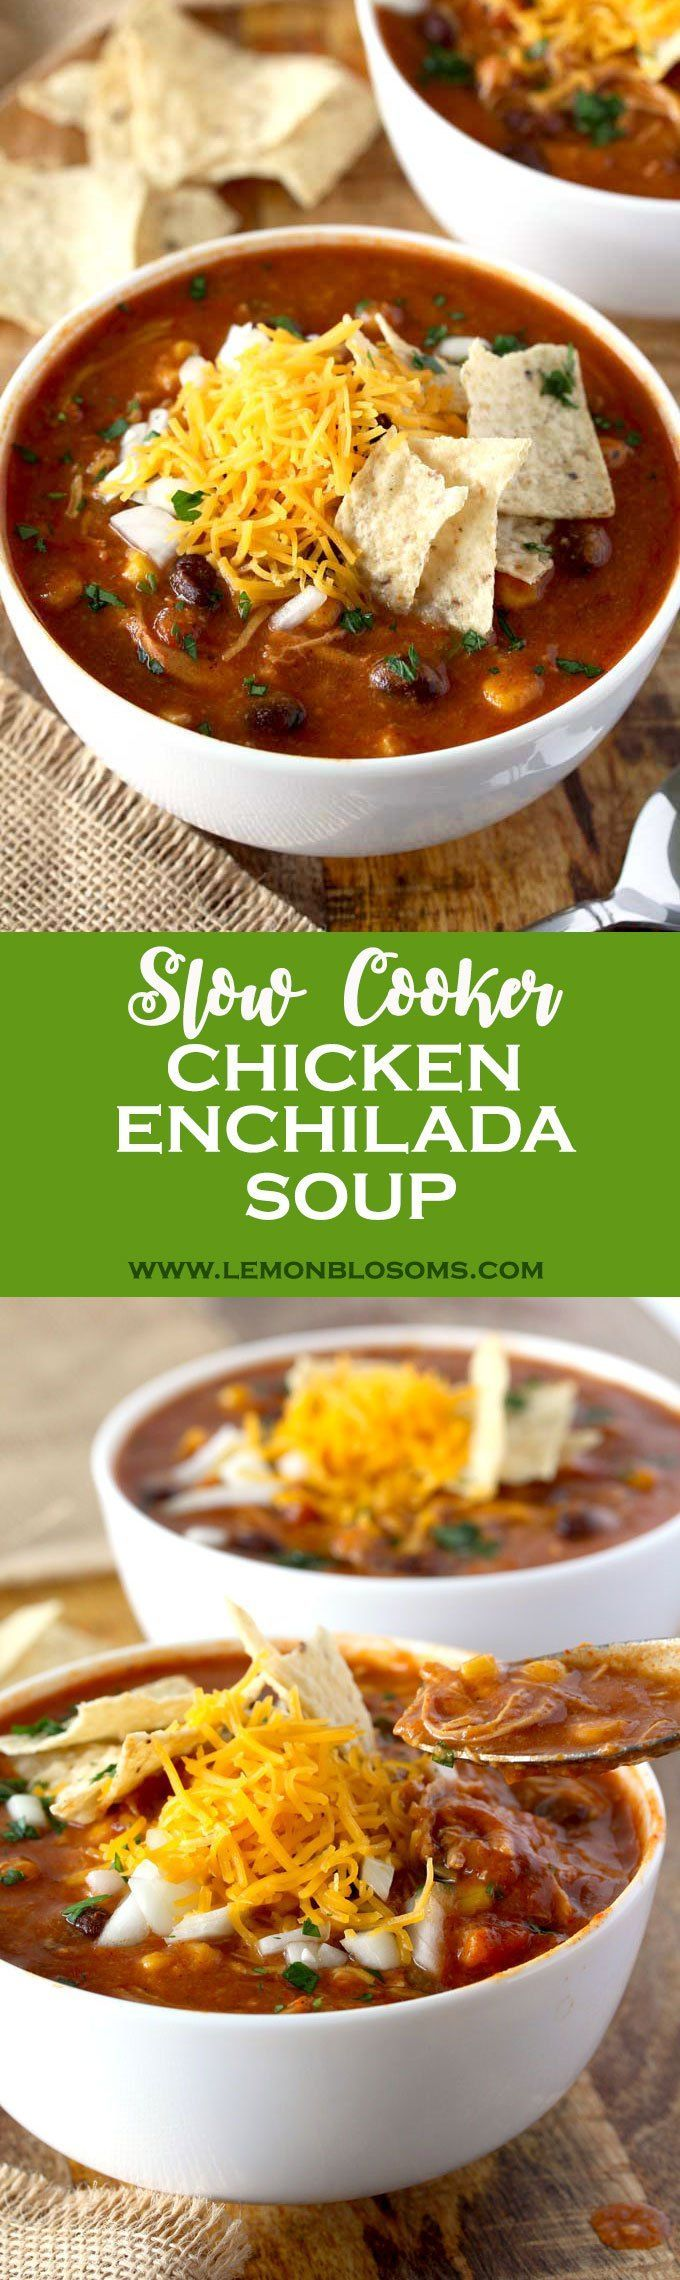 This Slow Cooker Chicken Enchilada Soup is bold in flavor! Cheesy, creamy and full of shredded chicken, black beans and corn. With only 10 minutes of prep time this soup is pure comfort in a bowl!